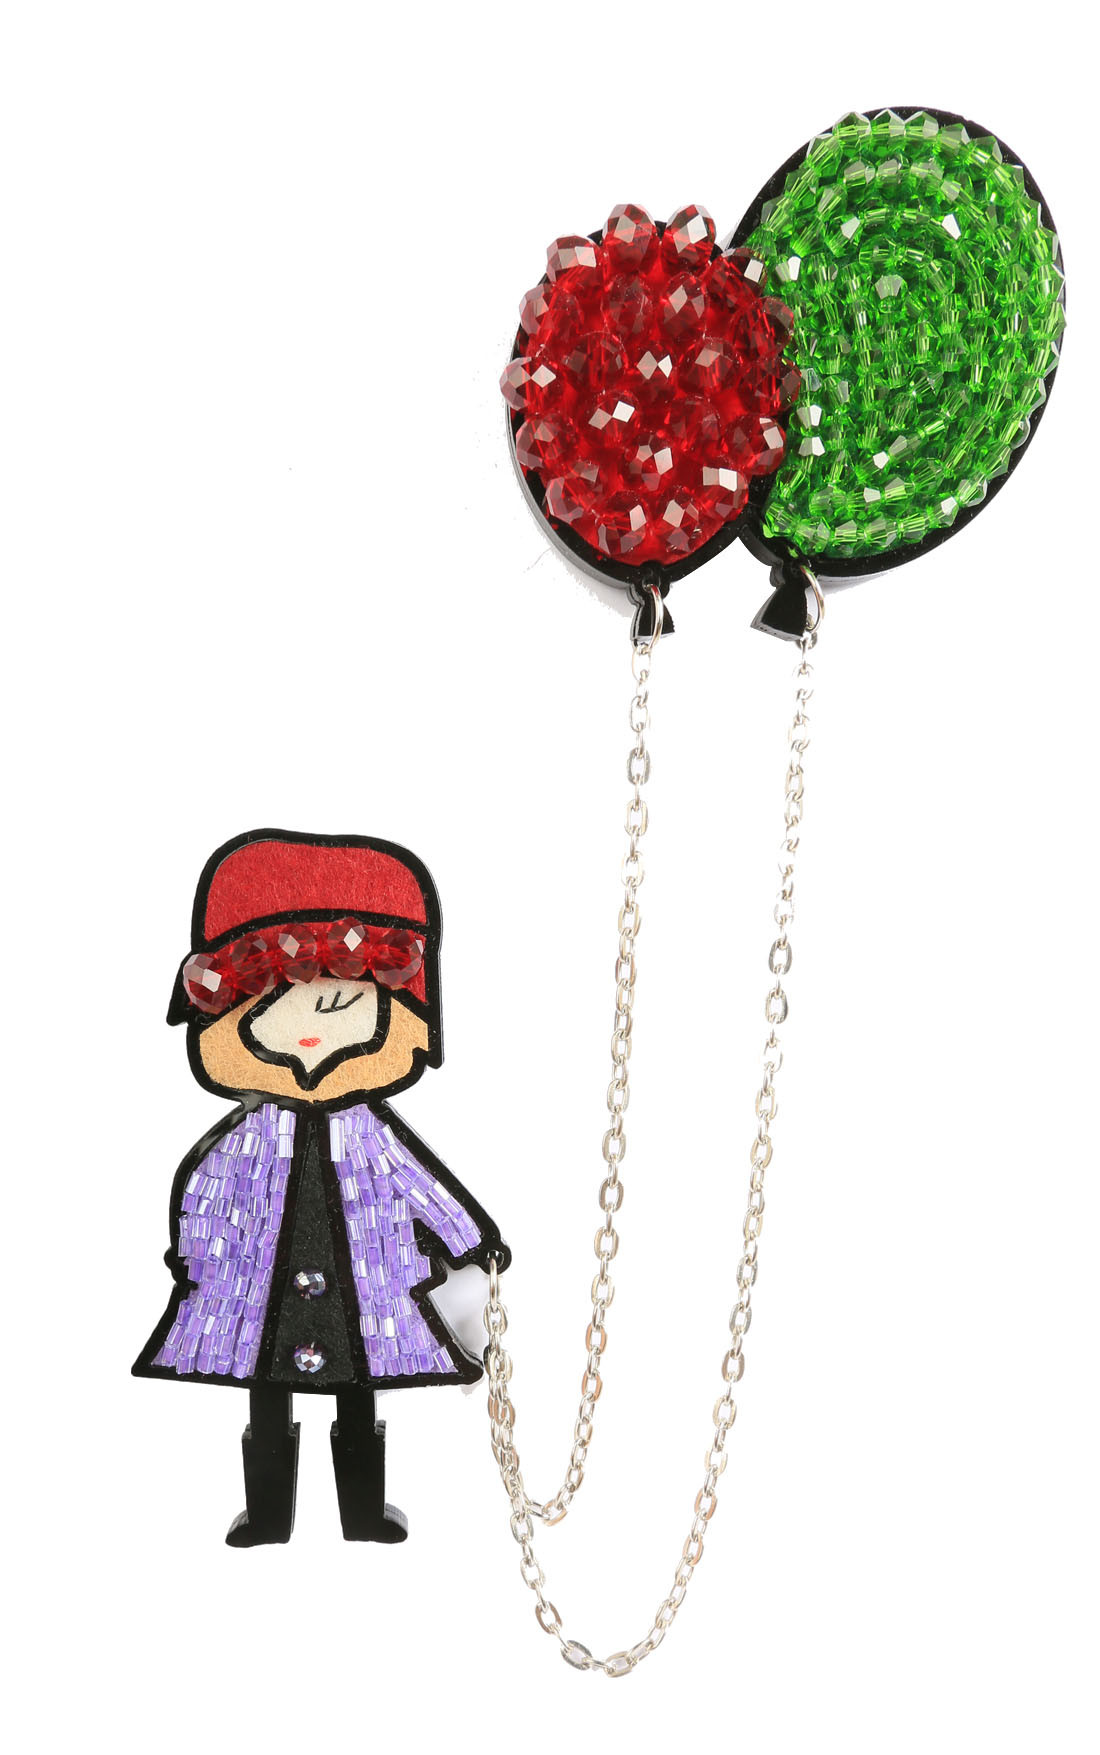 Fashion Drug - Magnetic Fashion Doll with Balloons Brooch (DollBalloon)